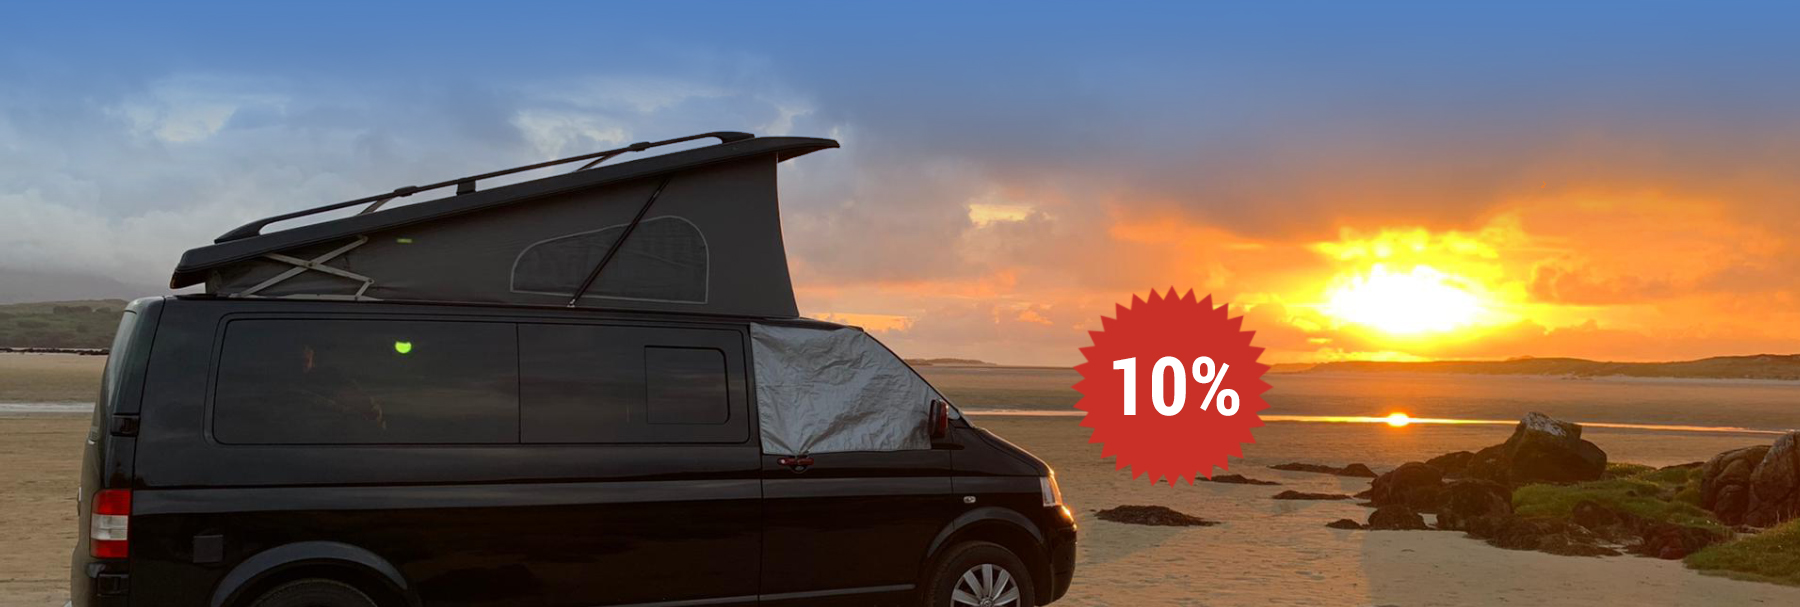 Early Bird Discount Sale 2019 Lazy Days VW Camper Hire